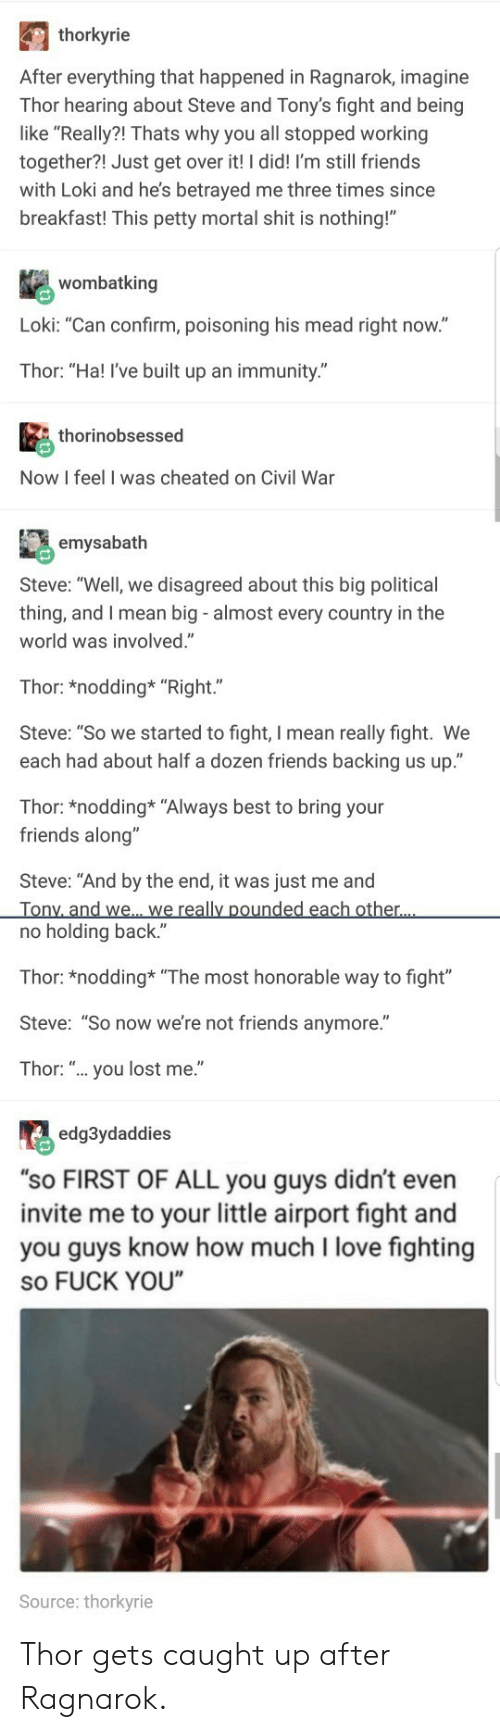 """Friends, Fuck You, and Love: thorkyrie  After everything that happened in Ragnarok, imagine  Thor hearing about Steve and Tony's fight and being  like """"Really?! Thats why you all stopped working  together?! Just get over it! I did! I'm still friends  with Loki and he's betrayed me three times since  breakfast! This petty mortal shit is nothing!""""  wombatking  Loki: """"Can confirm, poisoning his mead right now.""""  Thor: """"Ha! I've built up an immunity.""""  thorinobsessed  Now I feel I was cheated on Civil War  emysabath  Steve: """"Well, we disagreed about this big political  thing, and I mean big - almost every country in the  world was involved.""""  Thor: *nodding* """"Right.""""  Steve: """"So we started to fight, I mean really fight. We  each had about half a dozen friends backing us up.""""  Thor: *nodding* """"Always best to bring your  friends along""""  Steve: """"And by the end, it was just me and  no holding back.""""  Thor: *nodding """"The most honorable way to fight""""  Steve: """"So now we're not friends anymore.""""  Thor: """".. you lost me.""""  edg3ydaddies  """"sO FIRST OF ALL you guys didn't even  invite me to your little airport fight and  you guys know how much I love fighting  so FUCK YOU  Source: thorkyrie Thor gets caught up after Ragnarok."""